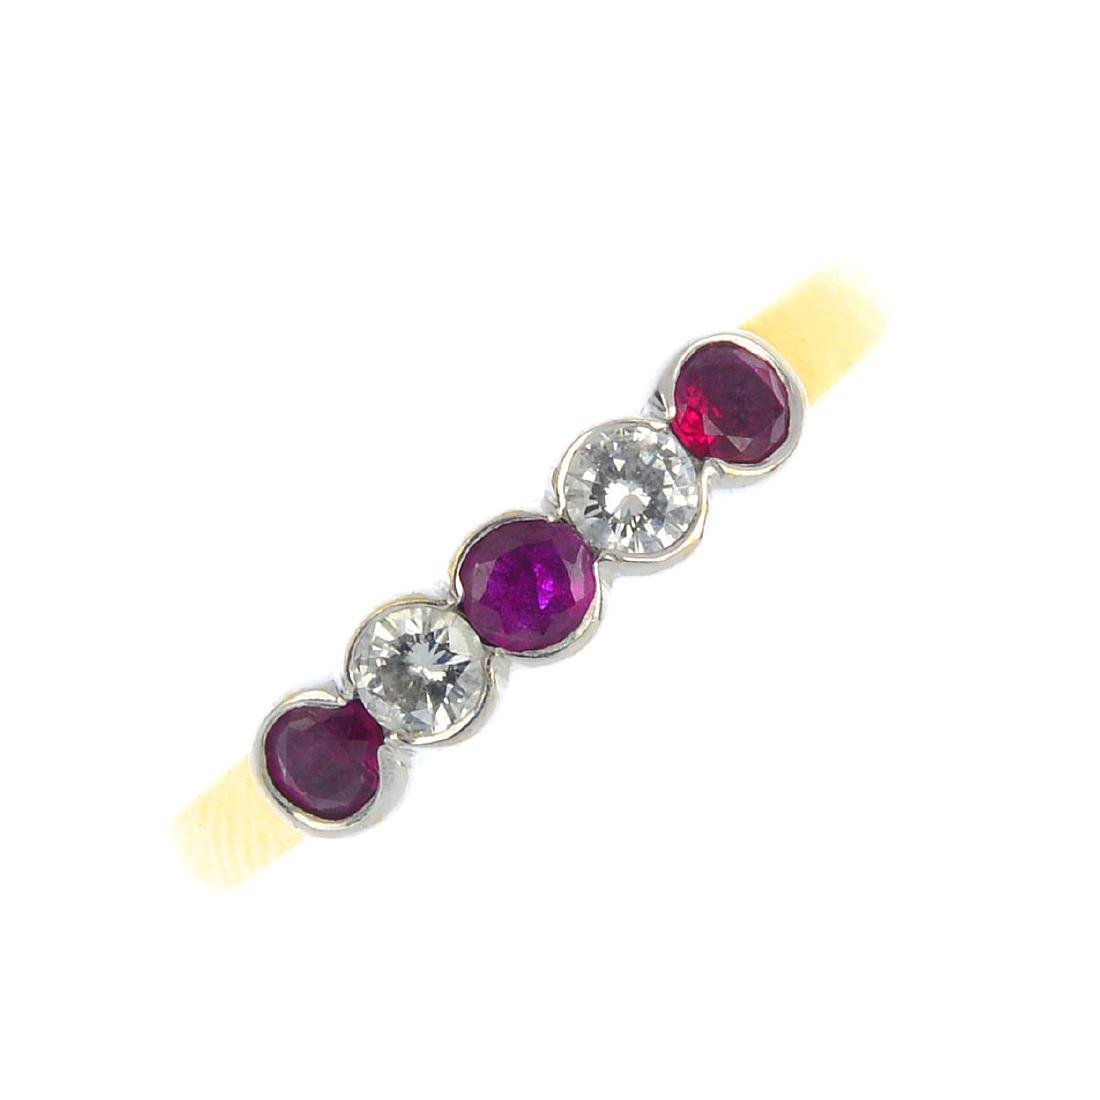 An 18ct gold ruby and diamond five-stone ring. The